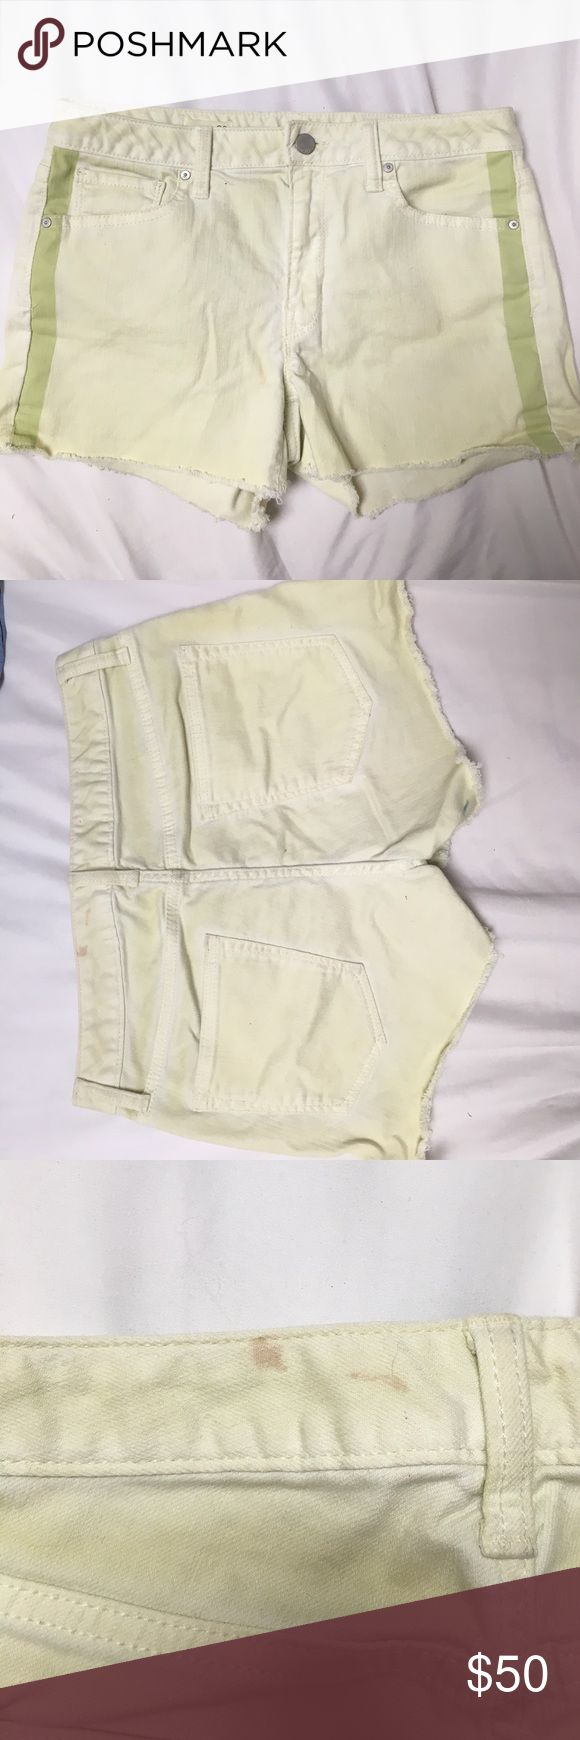 Green gap slim cut-offs Super cute flattering green slim cut off shorts with darker green stripes on the sides. Slight stain on the back, would be covered with a shirt, barely visible. GAP Shorts